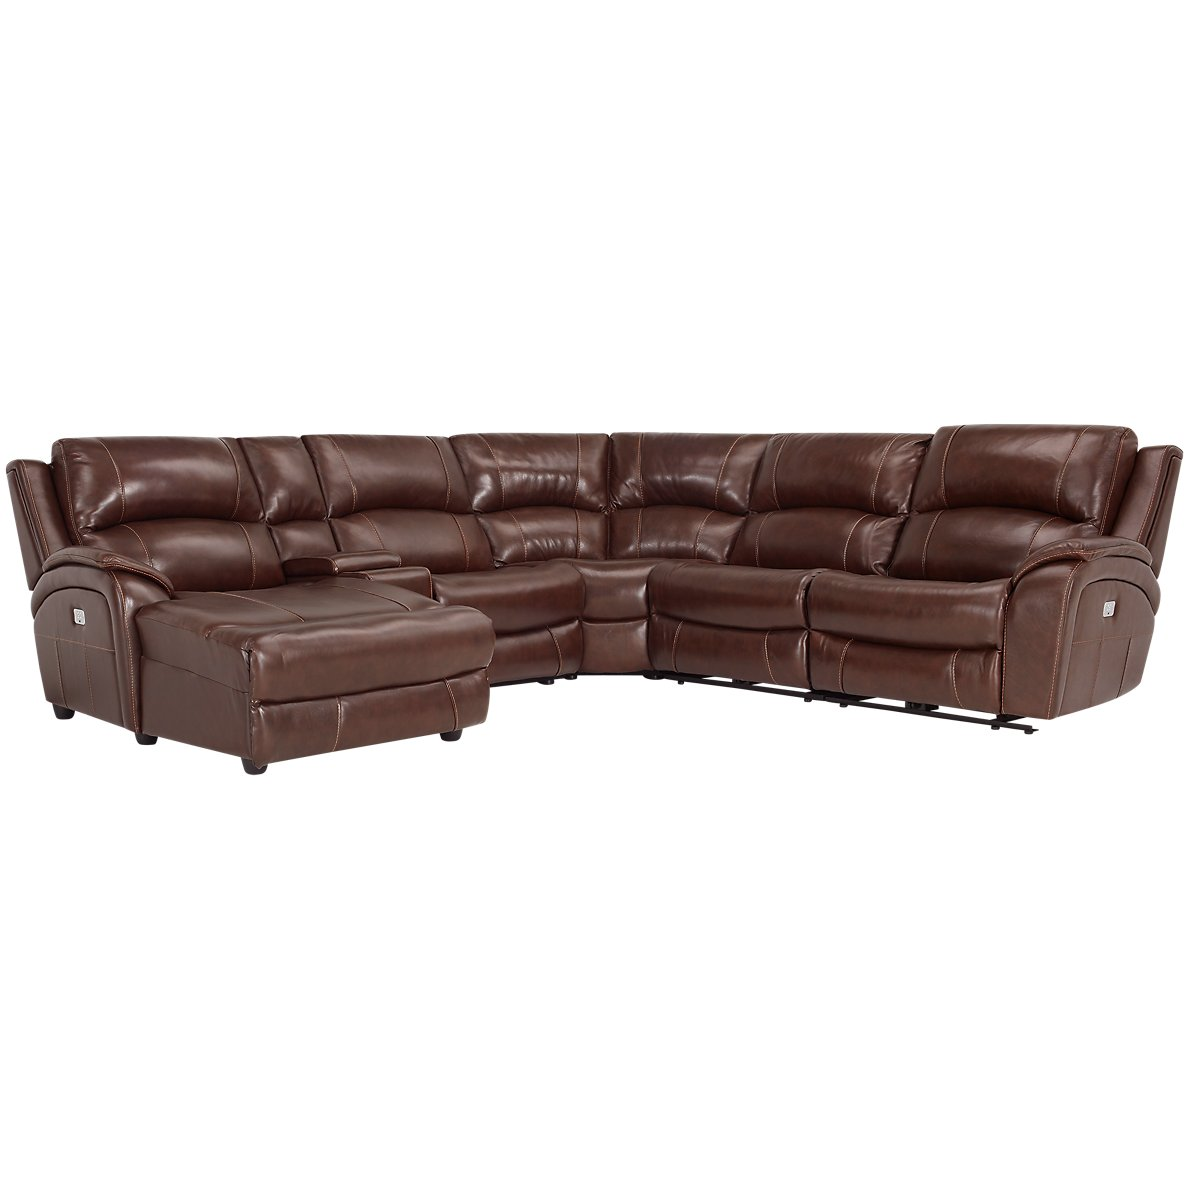 City furniture memphis medium brown leather left chaise for Brown leather chaise